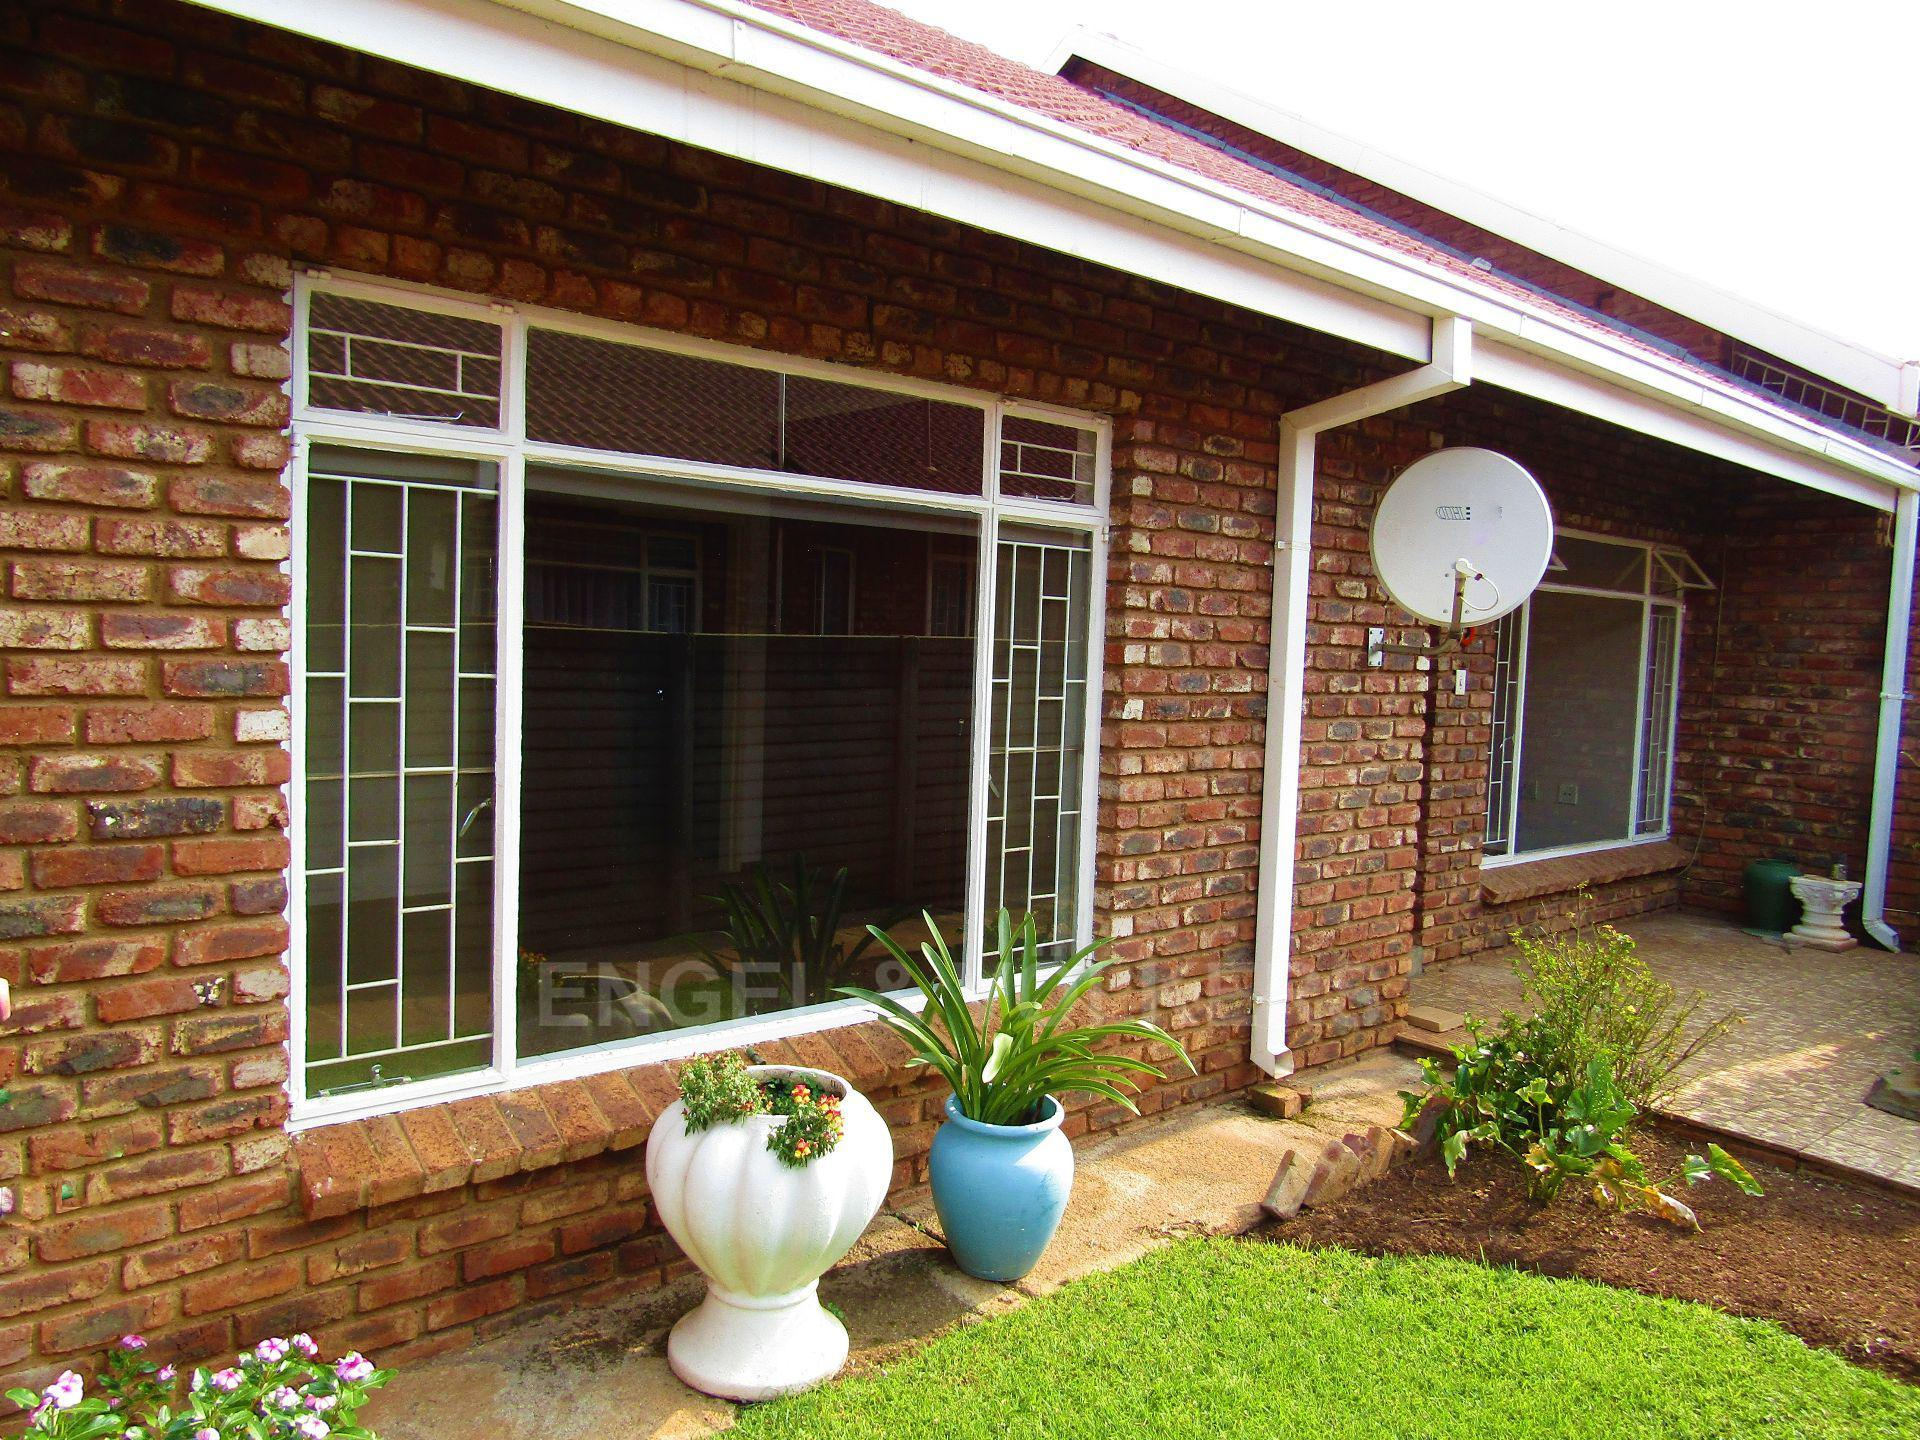 Potchefstroom Central property for sale. Ref No: 13459099. Picture no 1